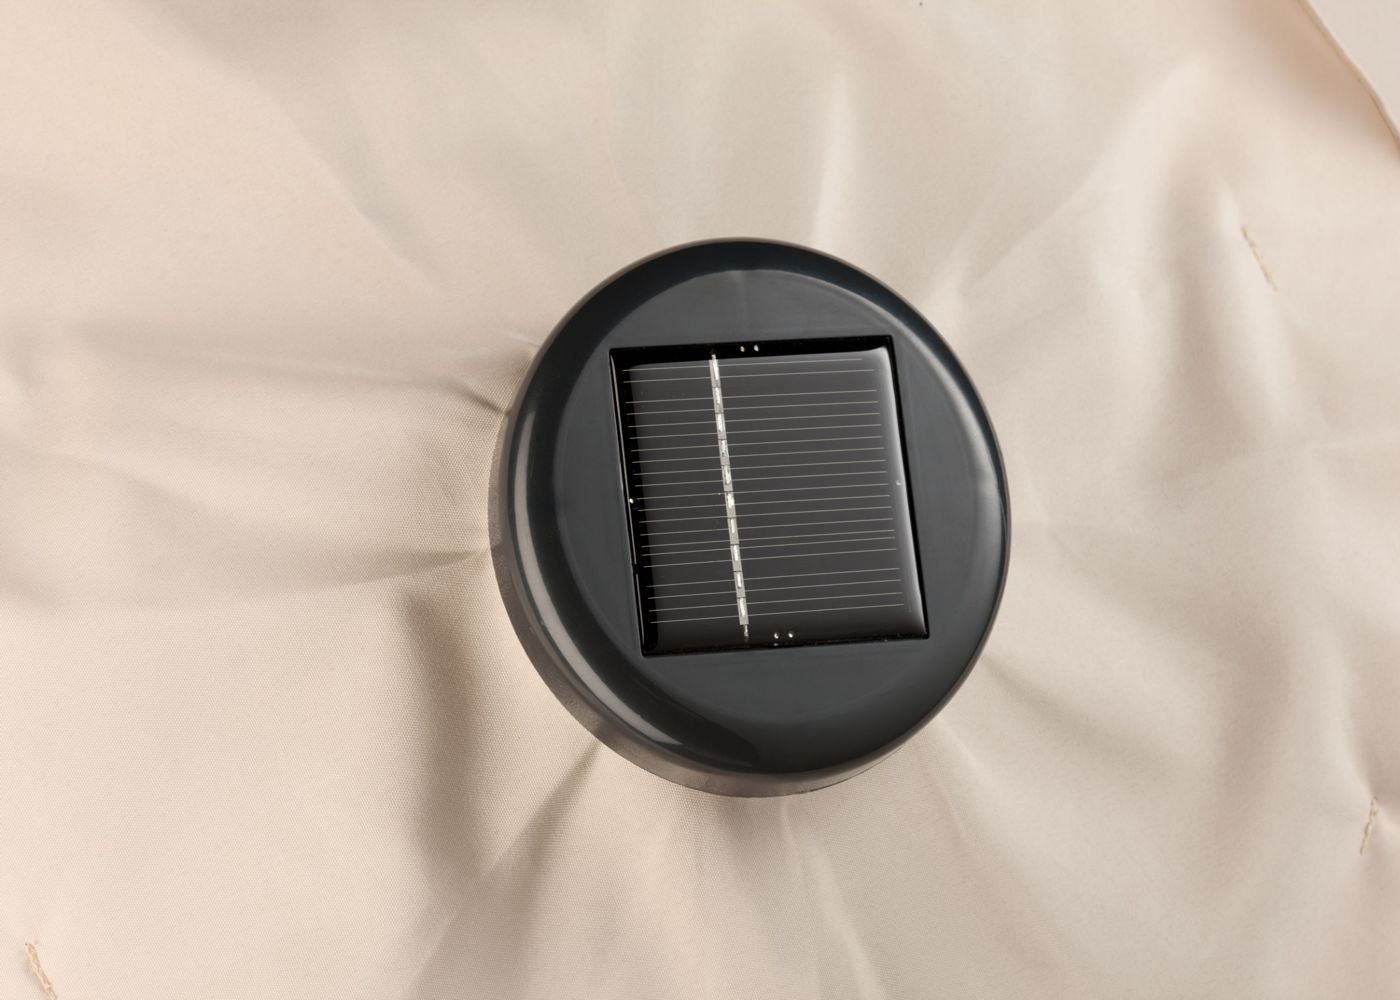 Solar cells in the top charge the standard AA batteries with enough electricity for at least 4 hours of illumination